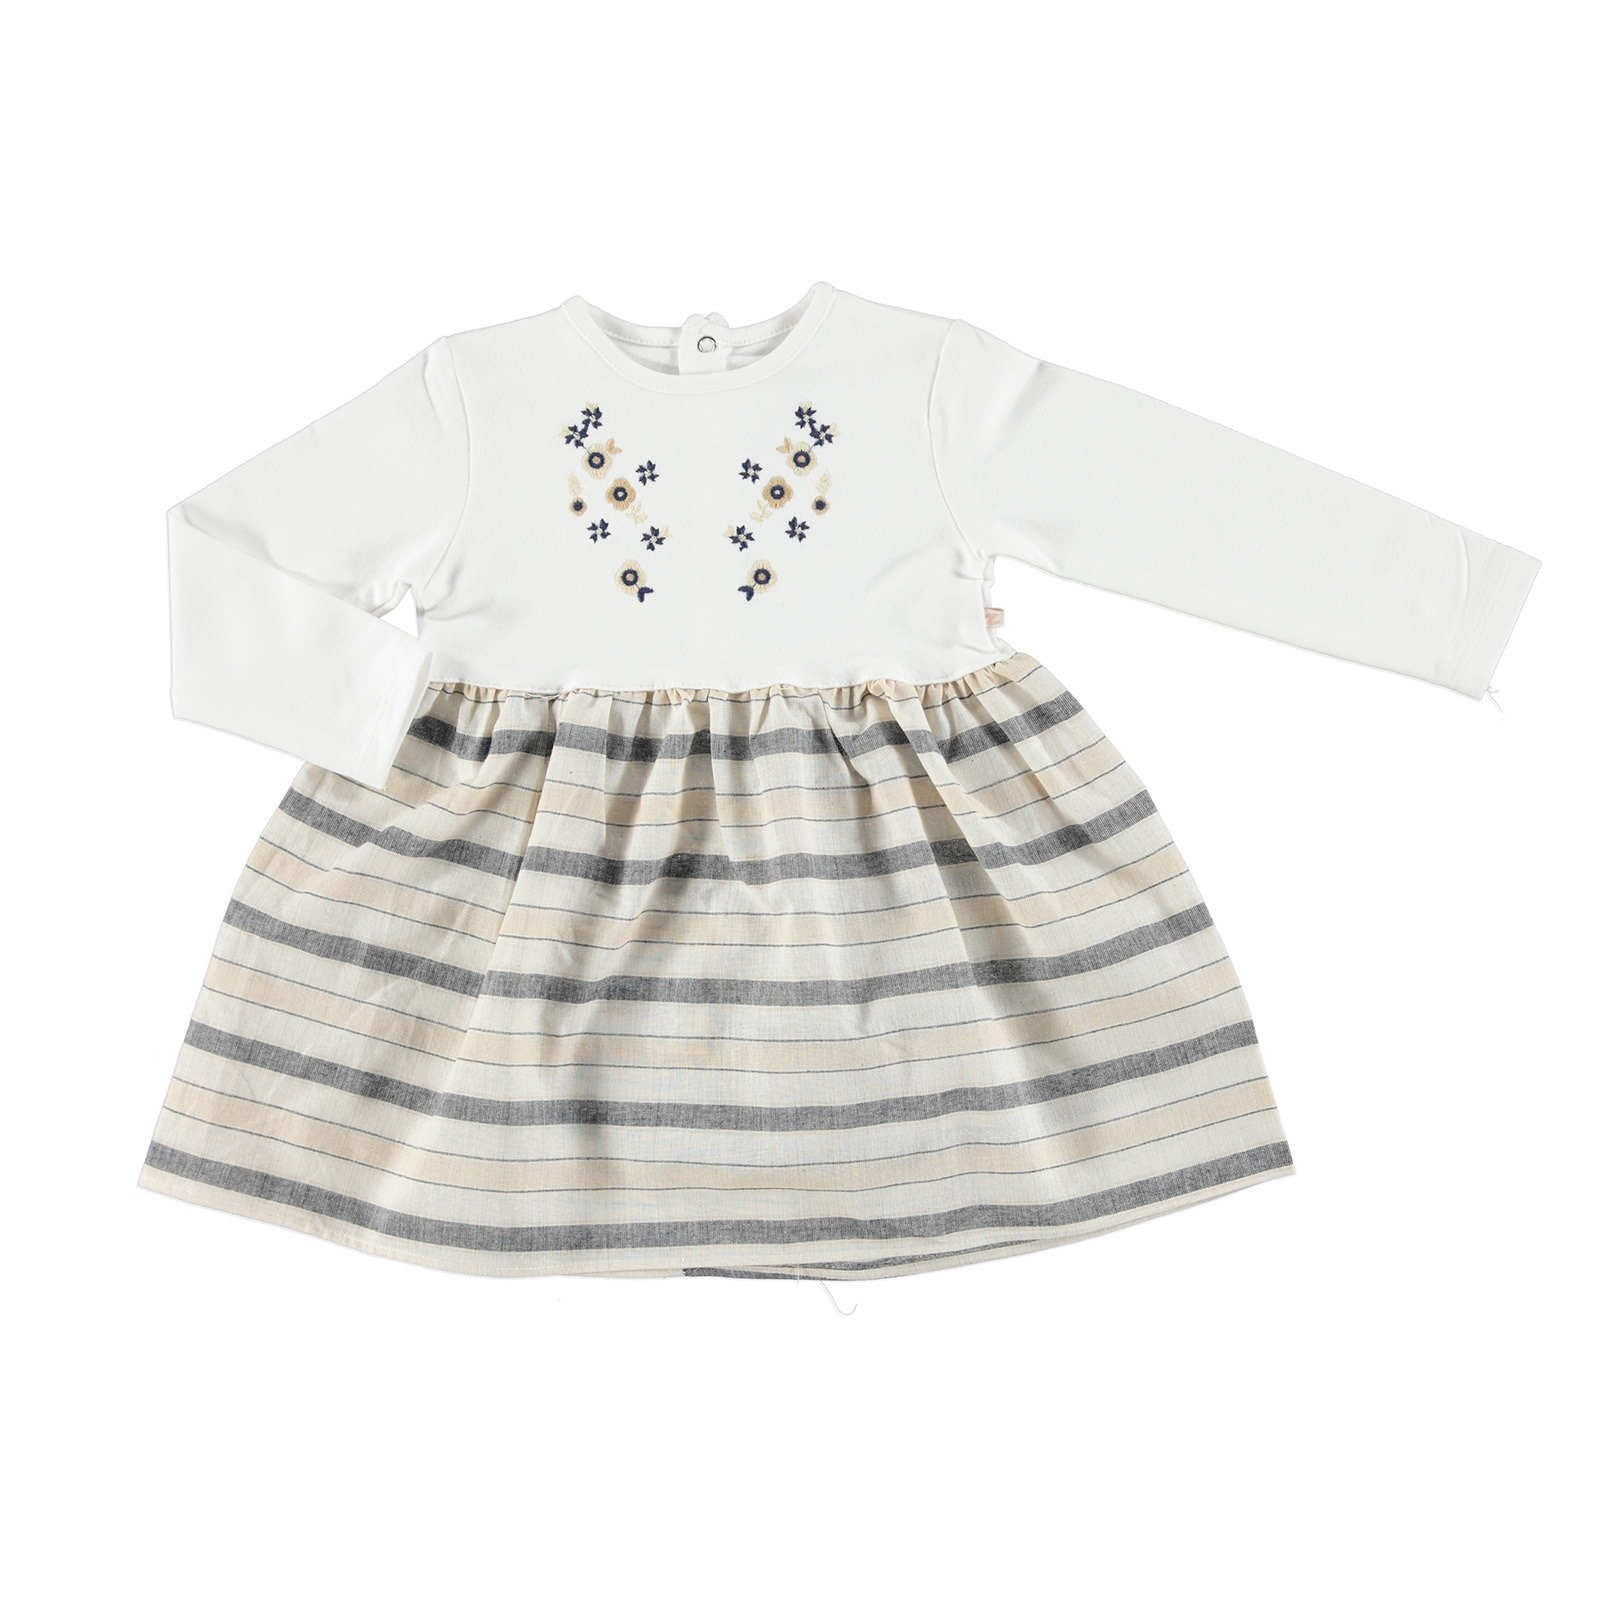 Dress in babycord size 4-5 years